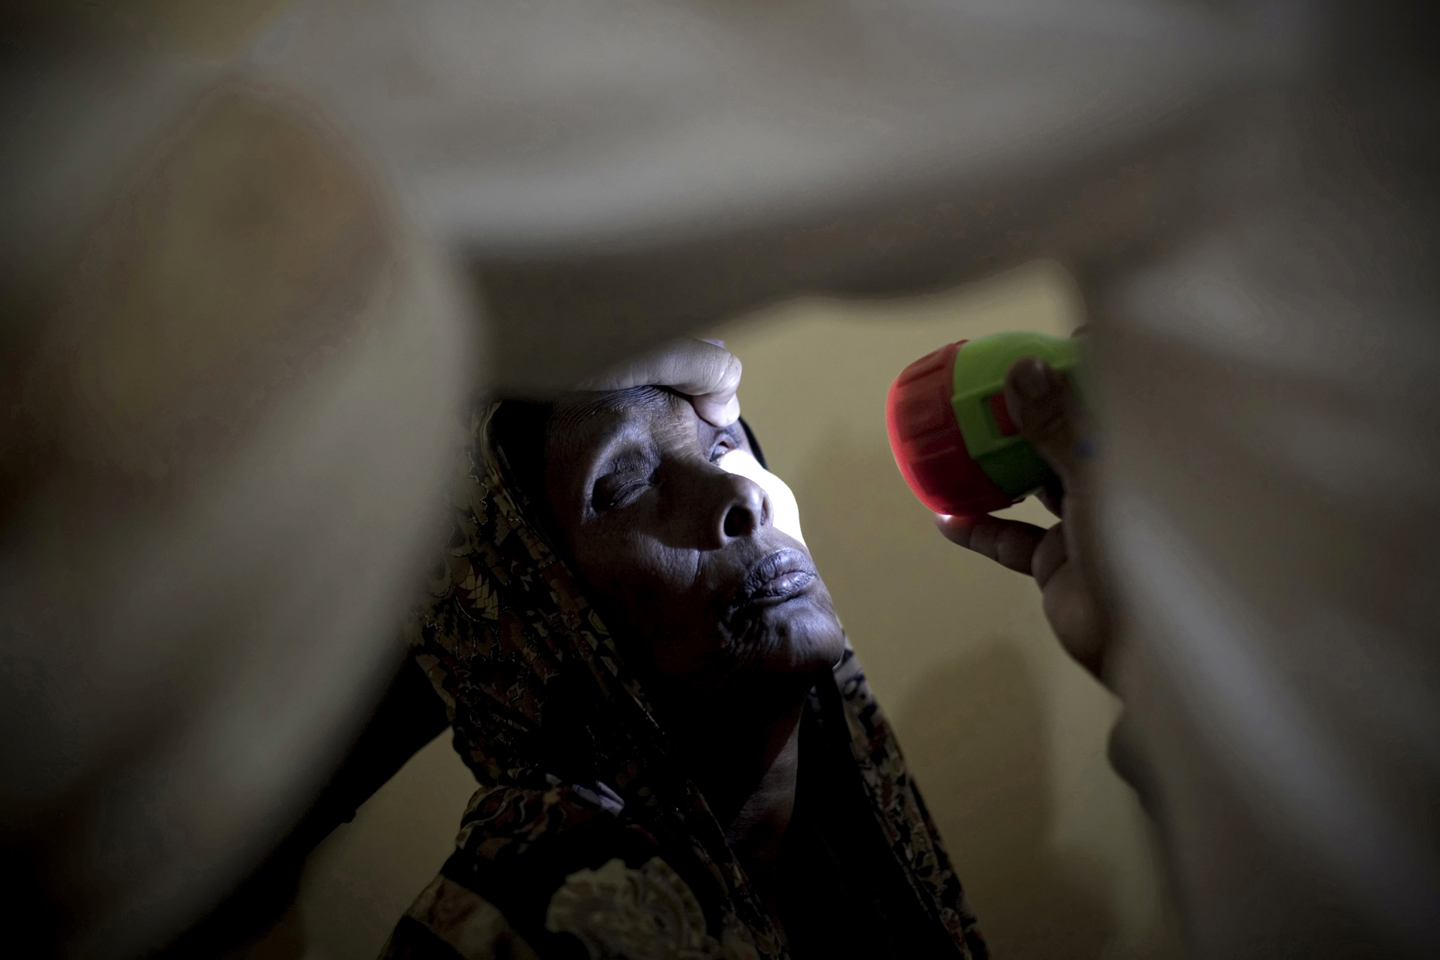 A woman gets her eyes checked at the MSF Holland hospital in Galcayo South in Puntland, Somalia on March 20, 2011 during an eye surgery camp aimed at giving hundreds of Somali's back their sight. This is the third eye surgery camp supported by MSF in the